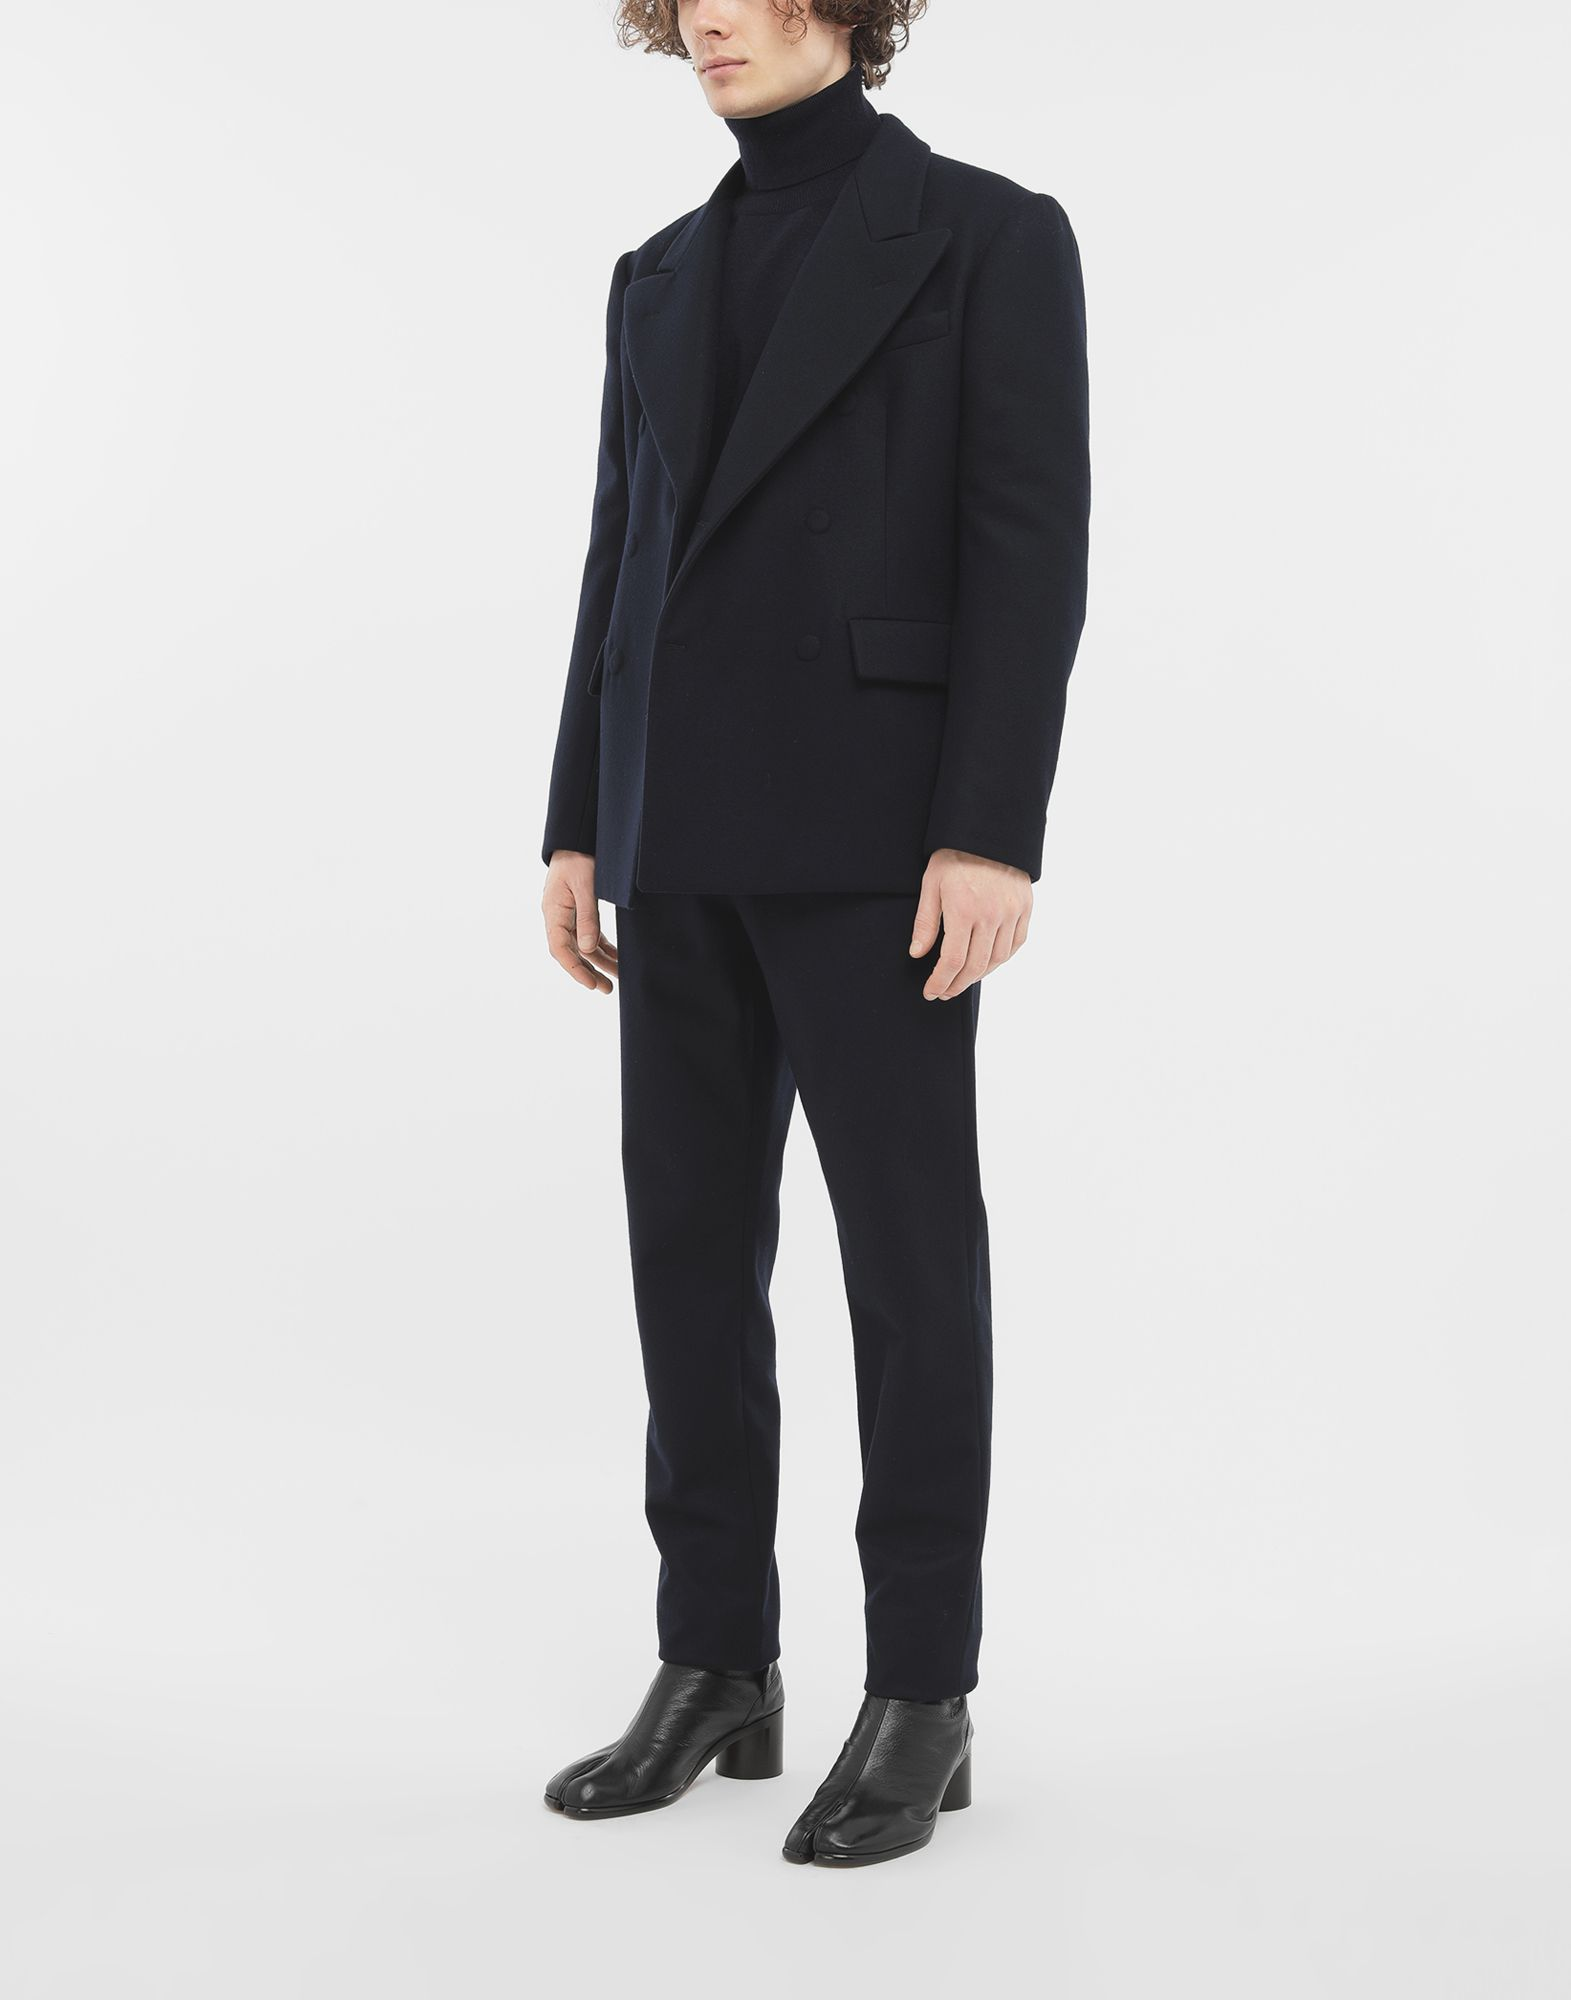 MAISON MARGIELA Fitted wool coat Blazer Man d